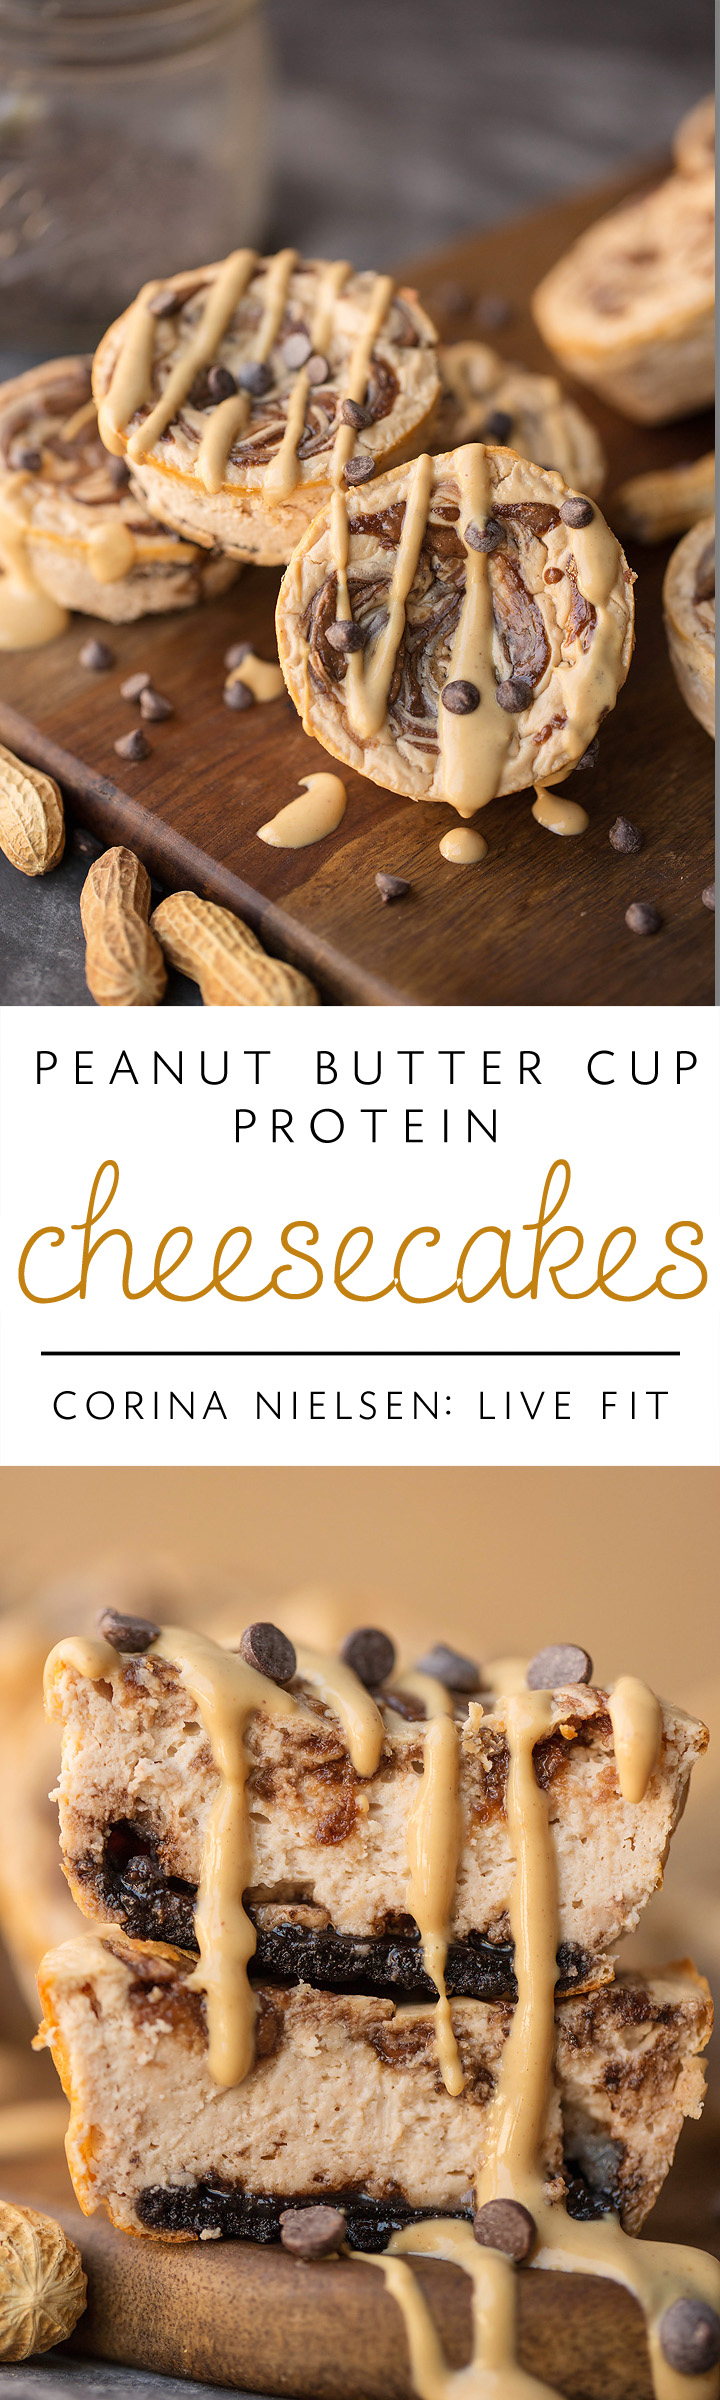 Peanut Butter Cup Swirl Protein Cheesecakes